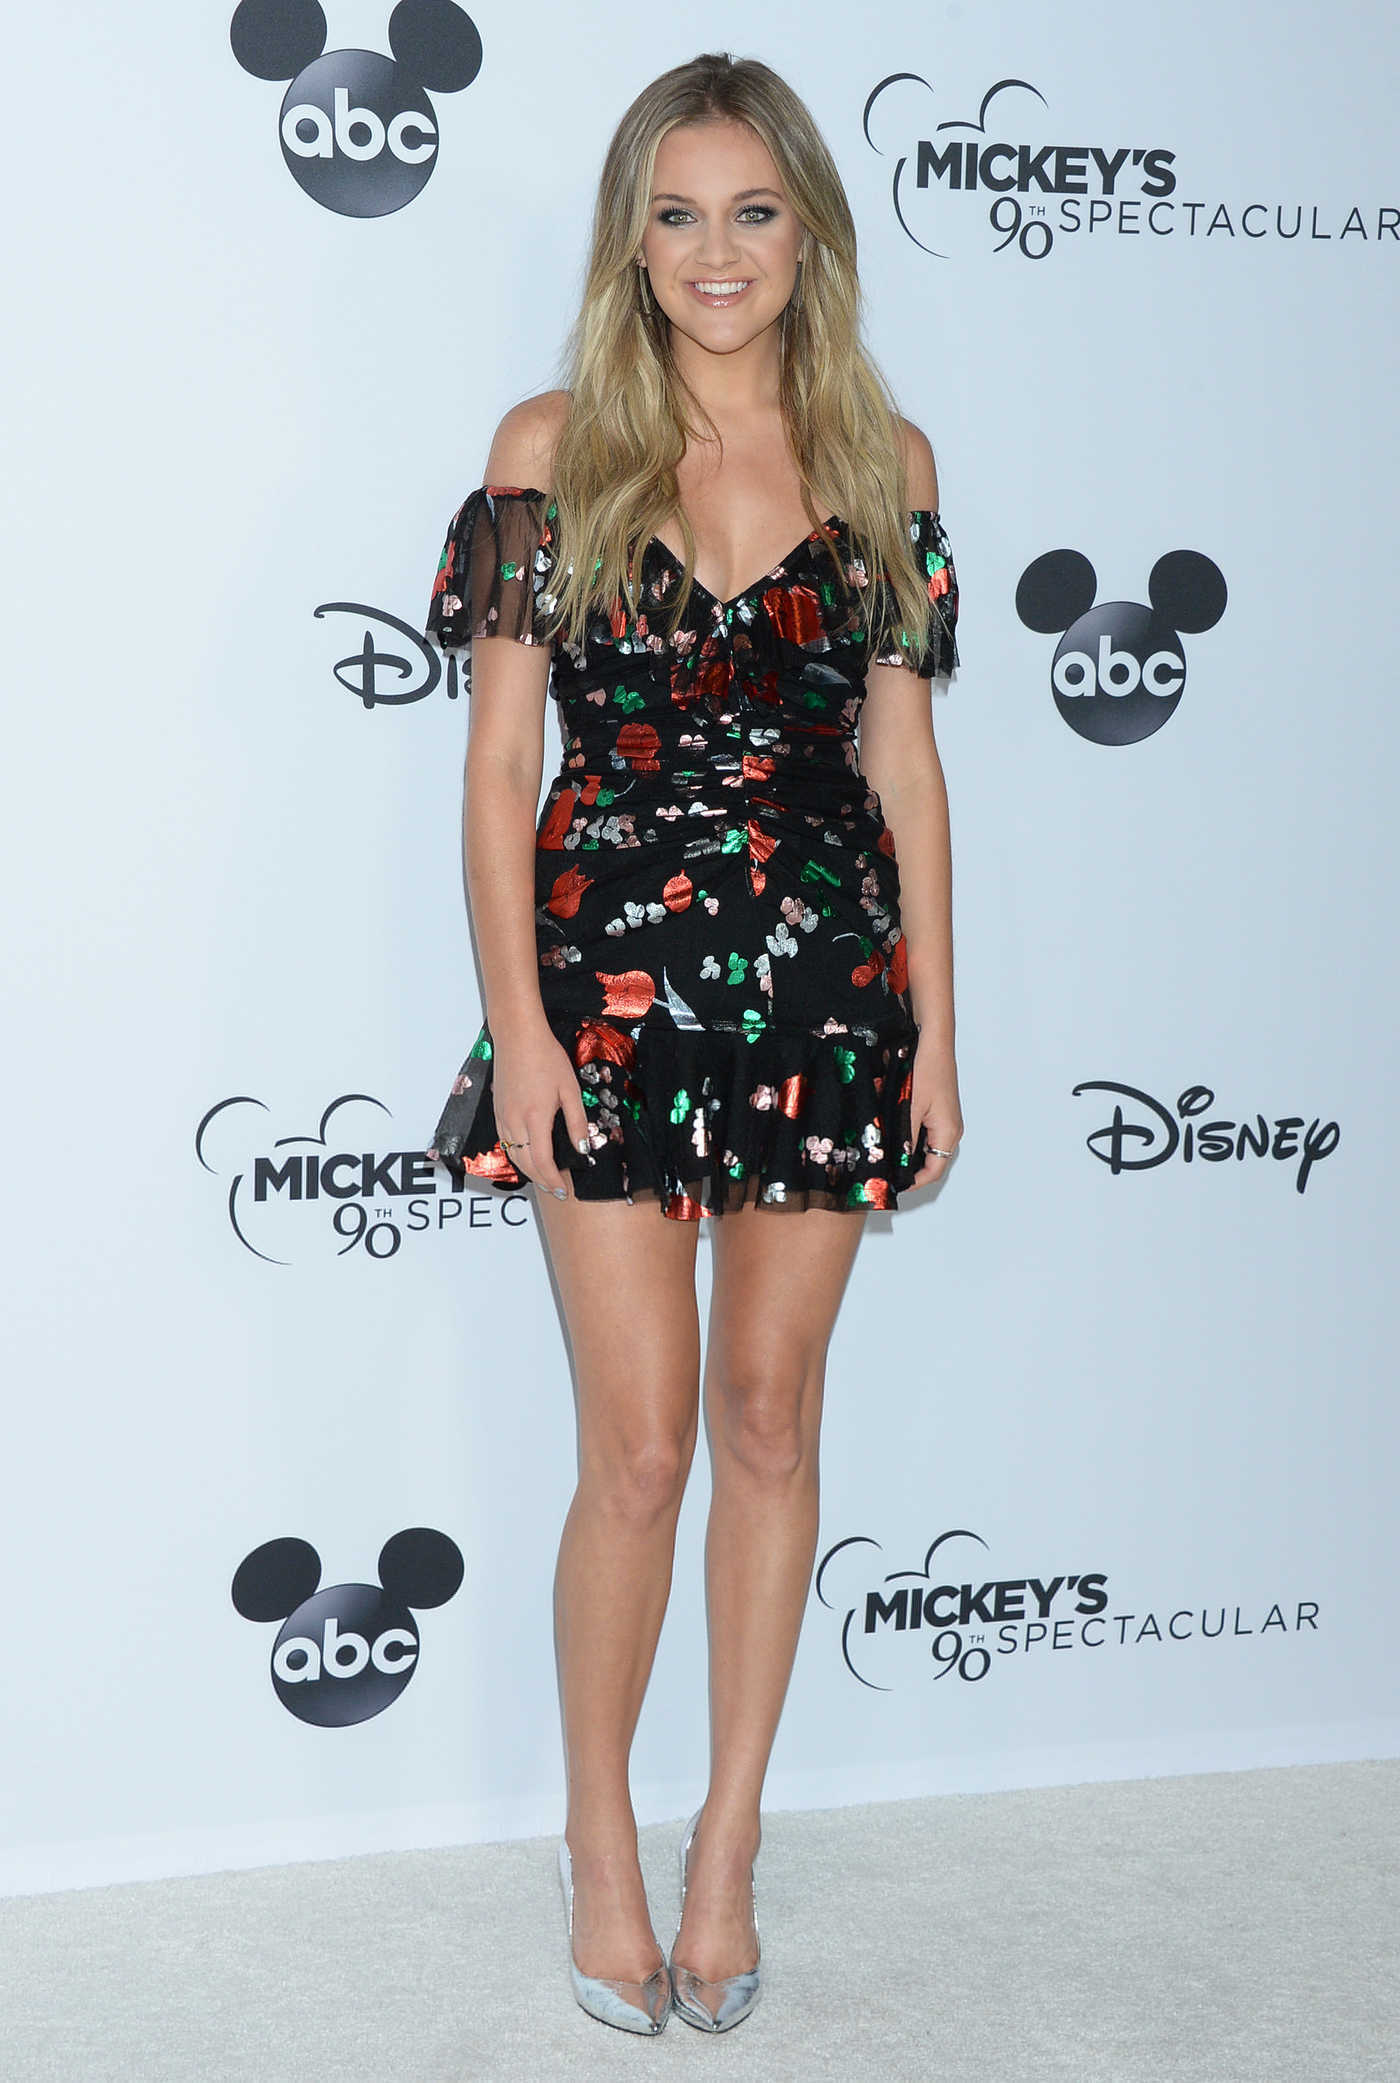 Kelsea Ballerini Attends Mickey's 90th Spectacular at Shrine Auditorium in Los Angeles 10/06/2018